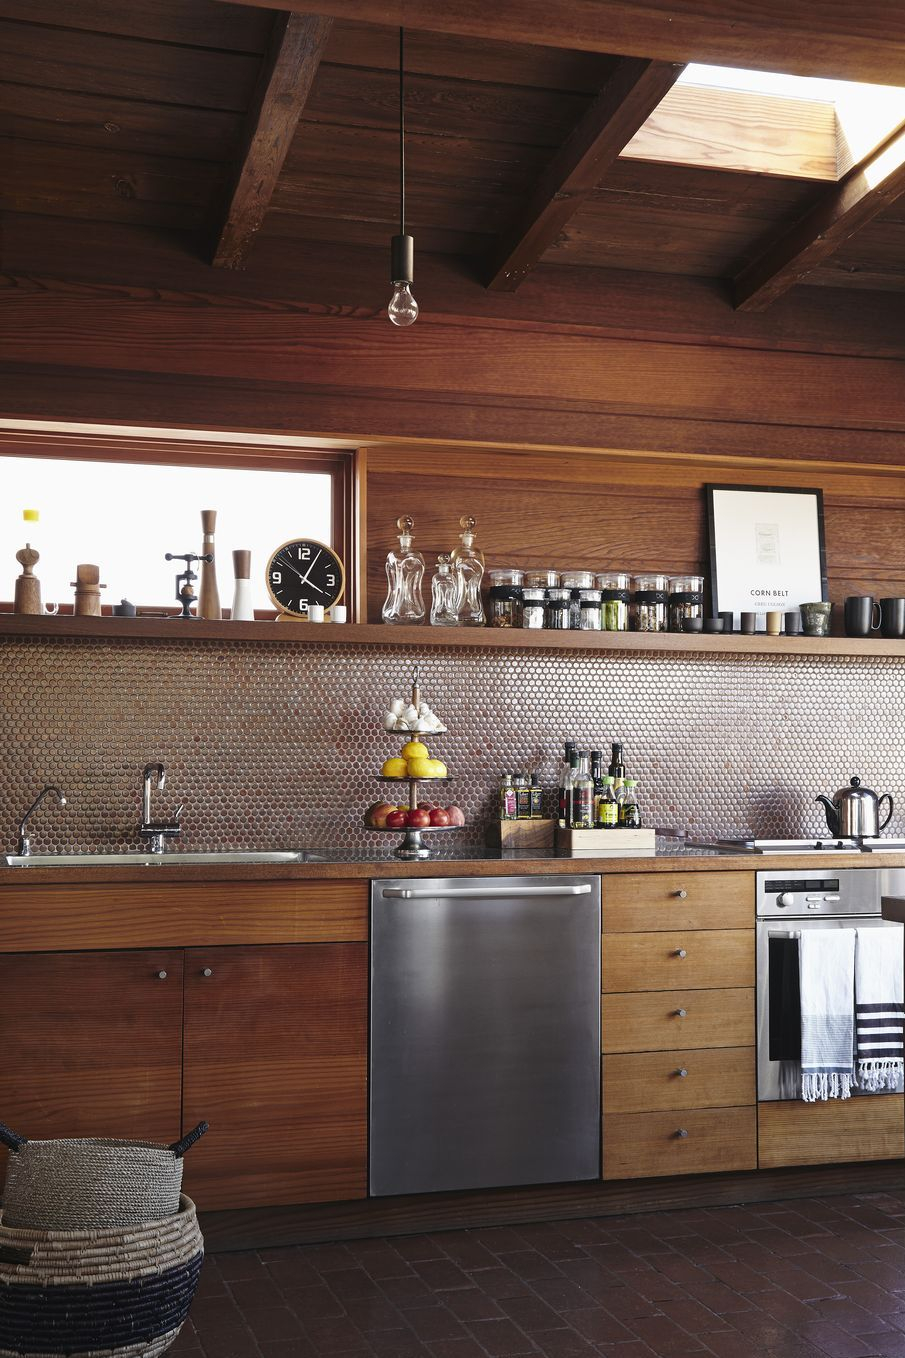 California cool A New Way To Enjoy The Wood Kitchens That Is Definitely Charming